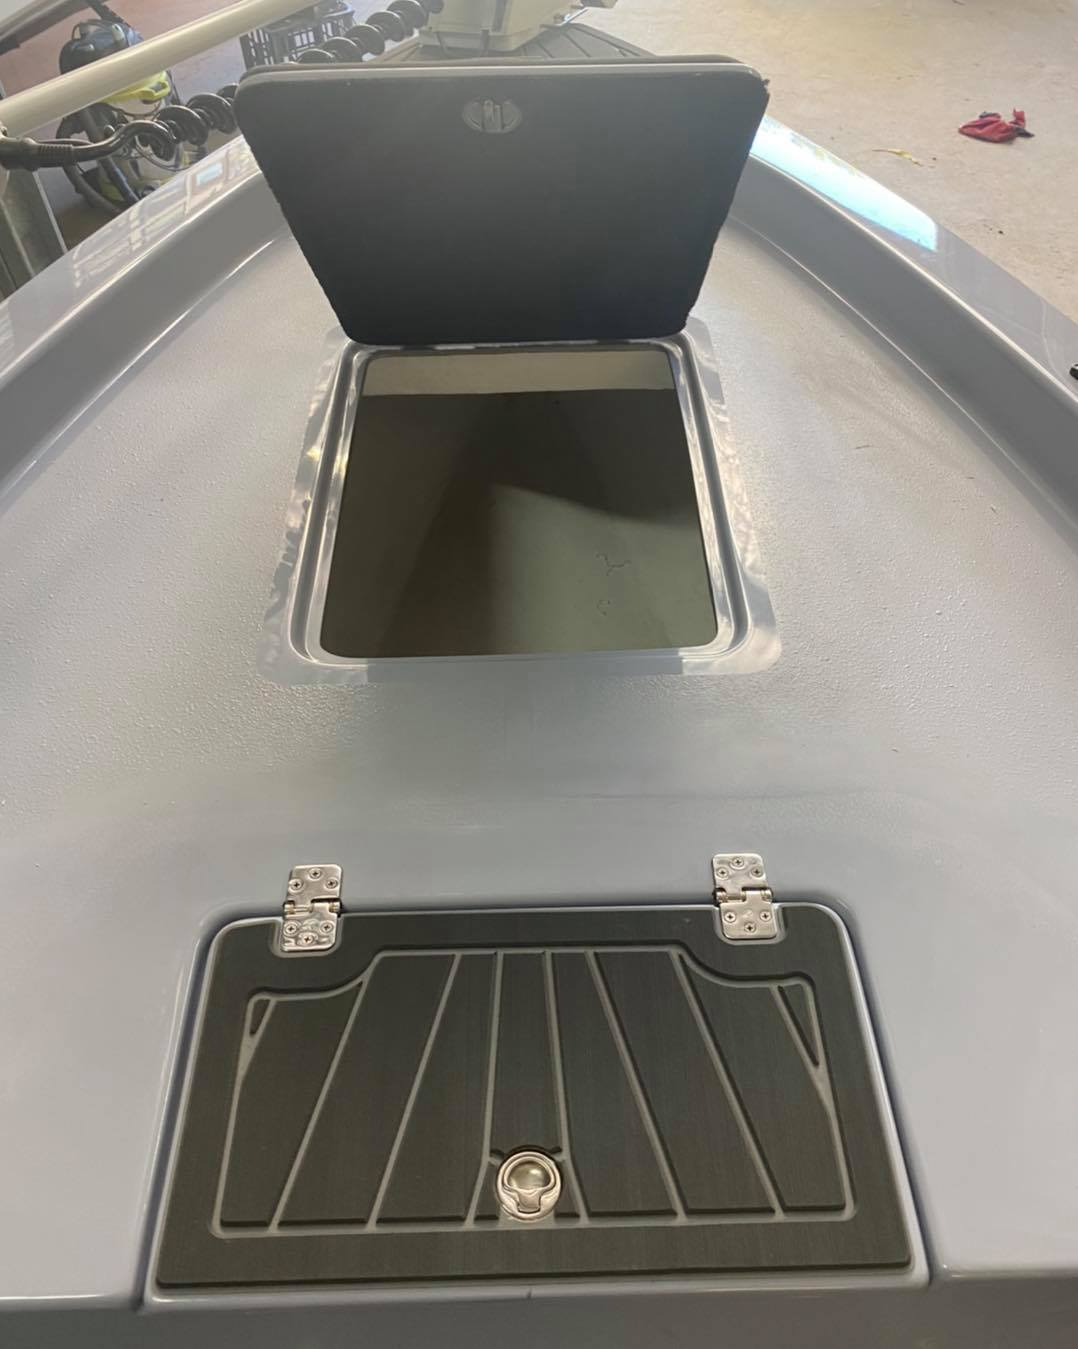 A Live Fish Well and Storage are some of the options added to our Force F13 Fisher!